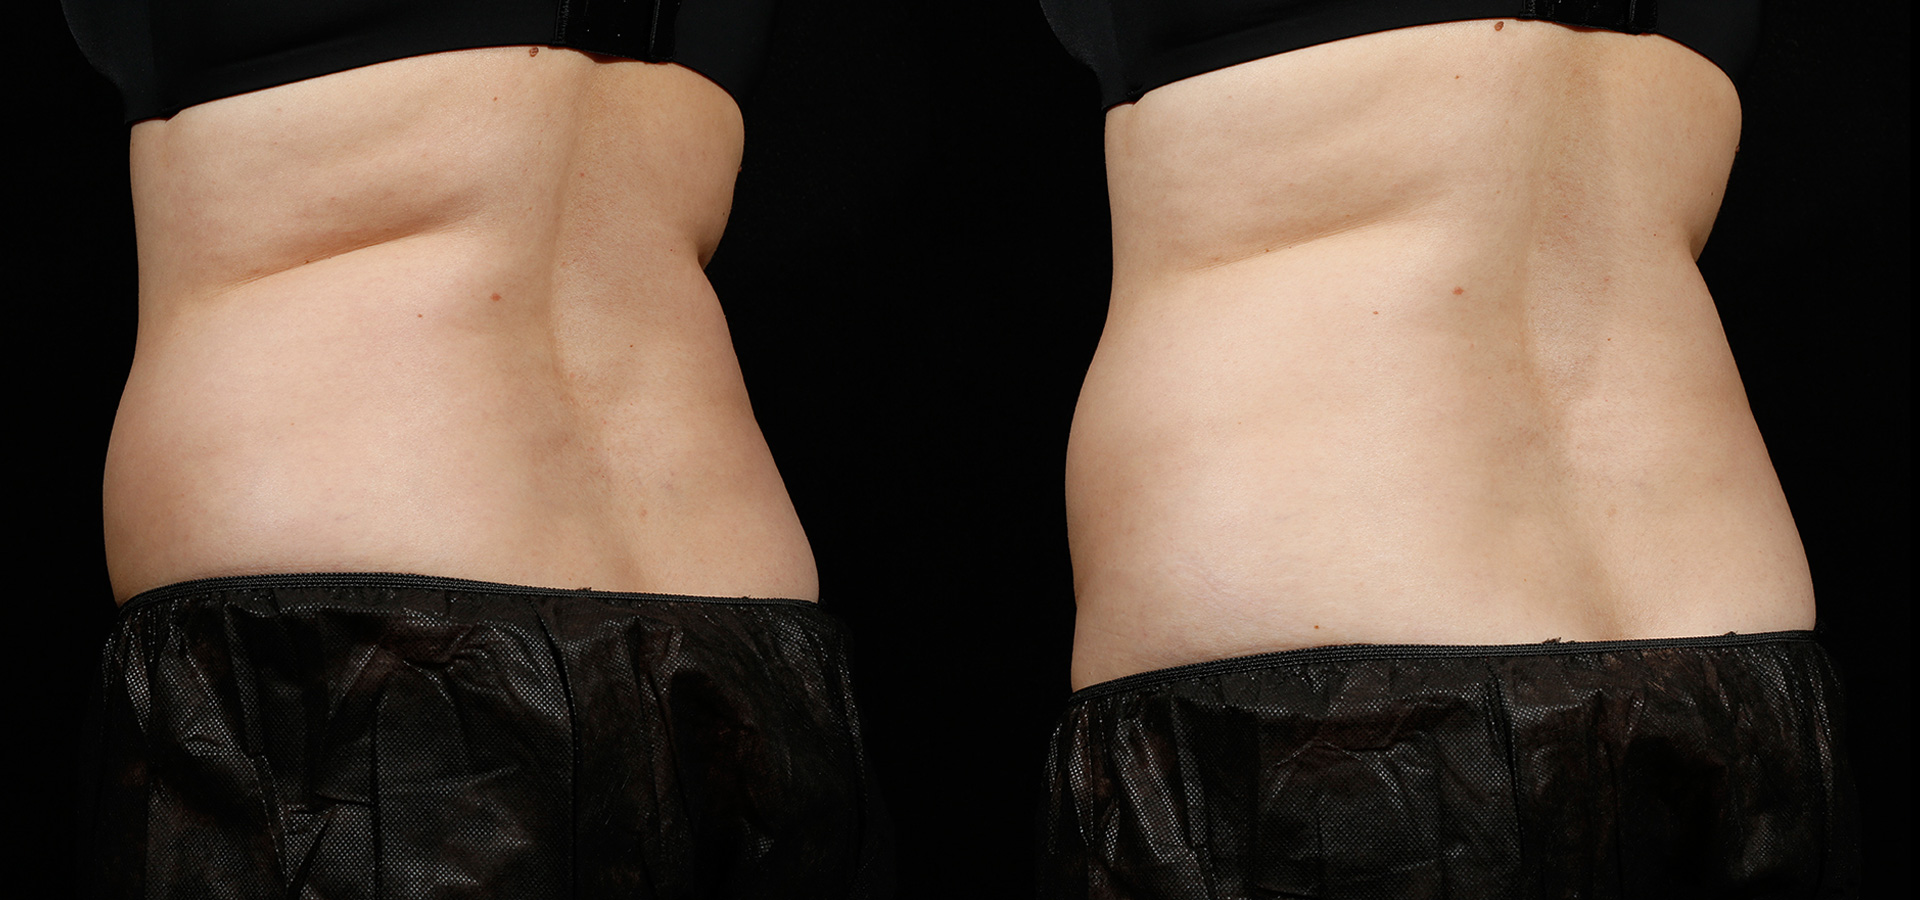 SculpSure Before & After 6 Weeks